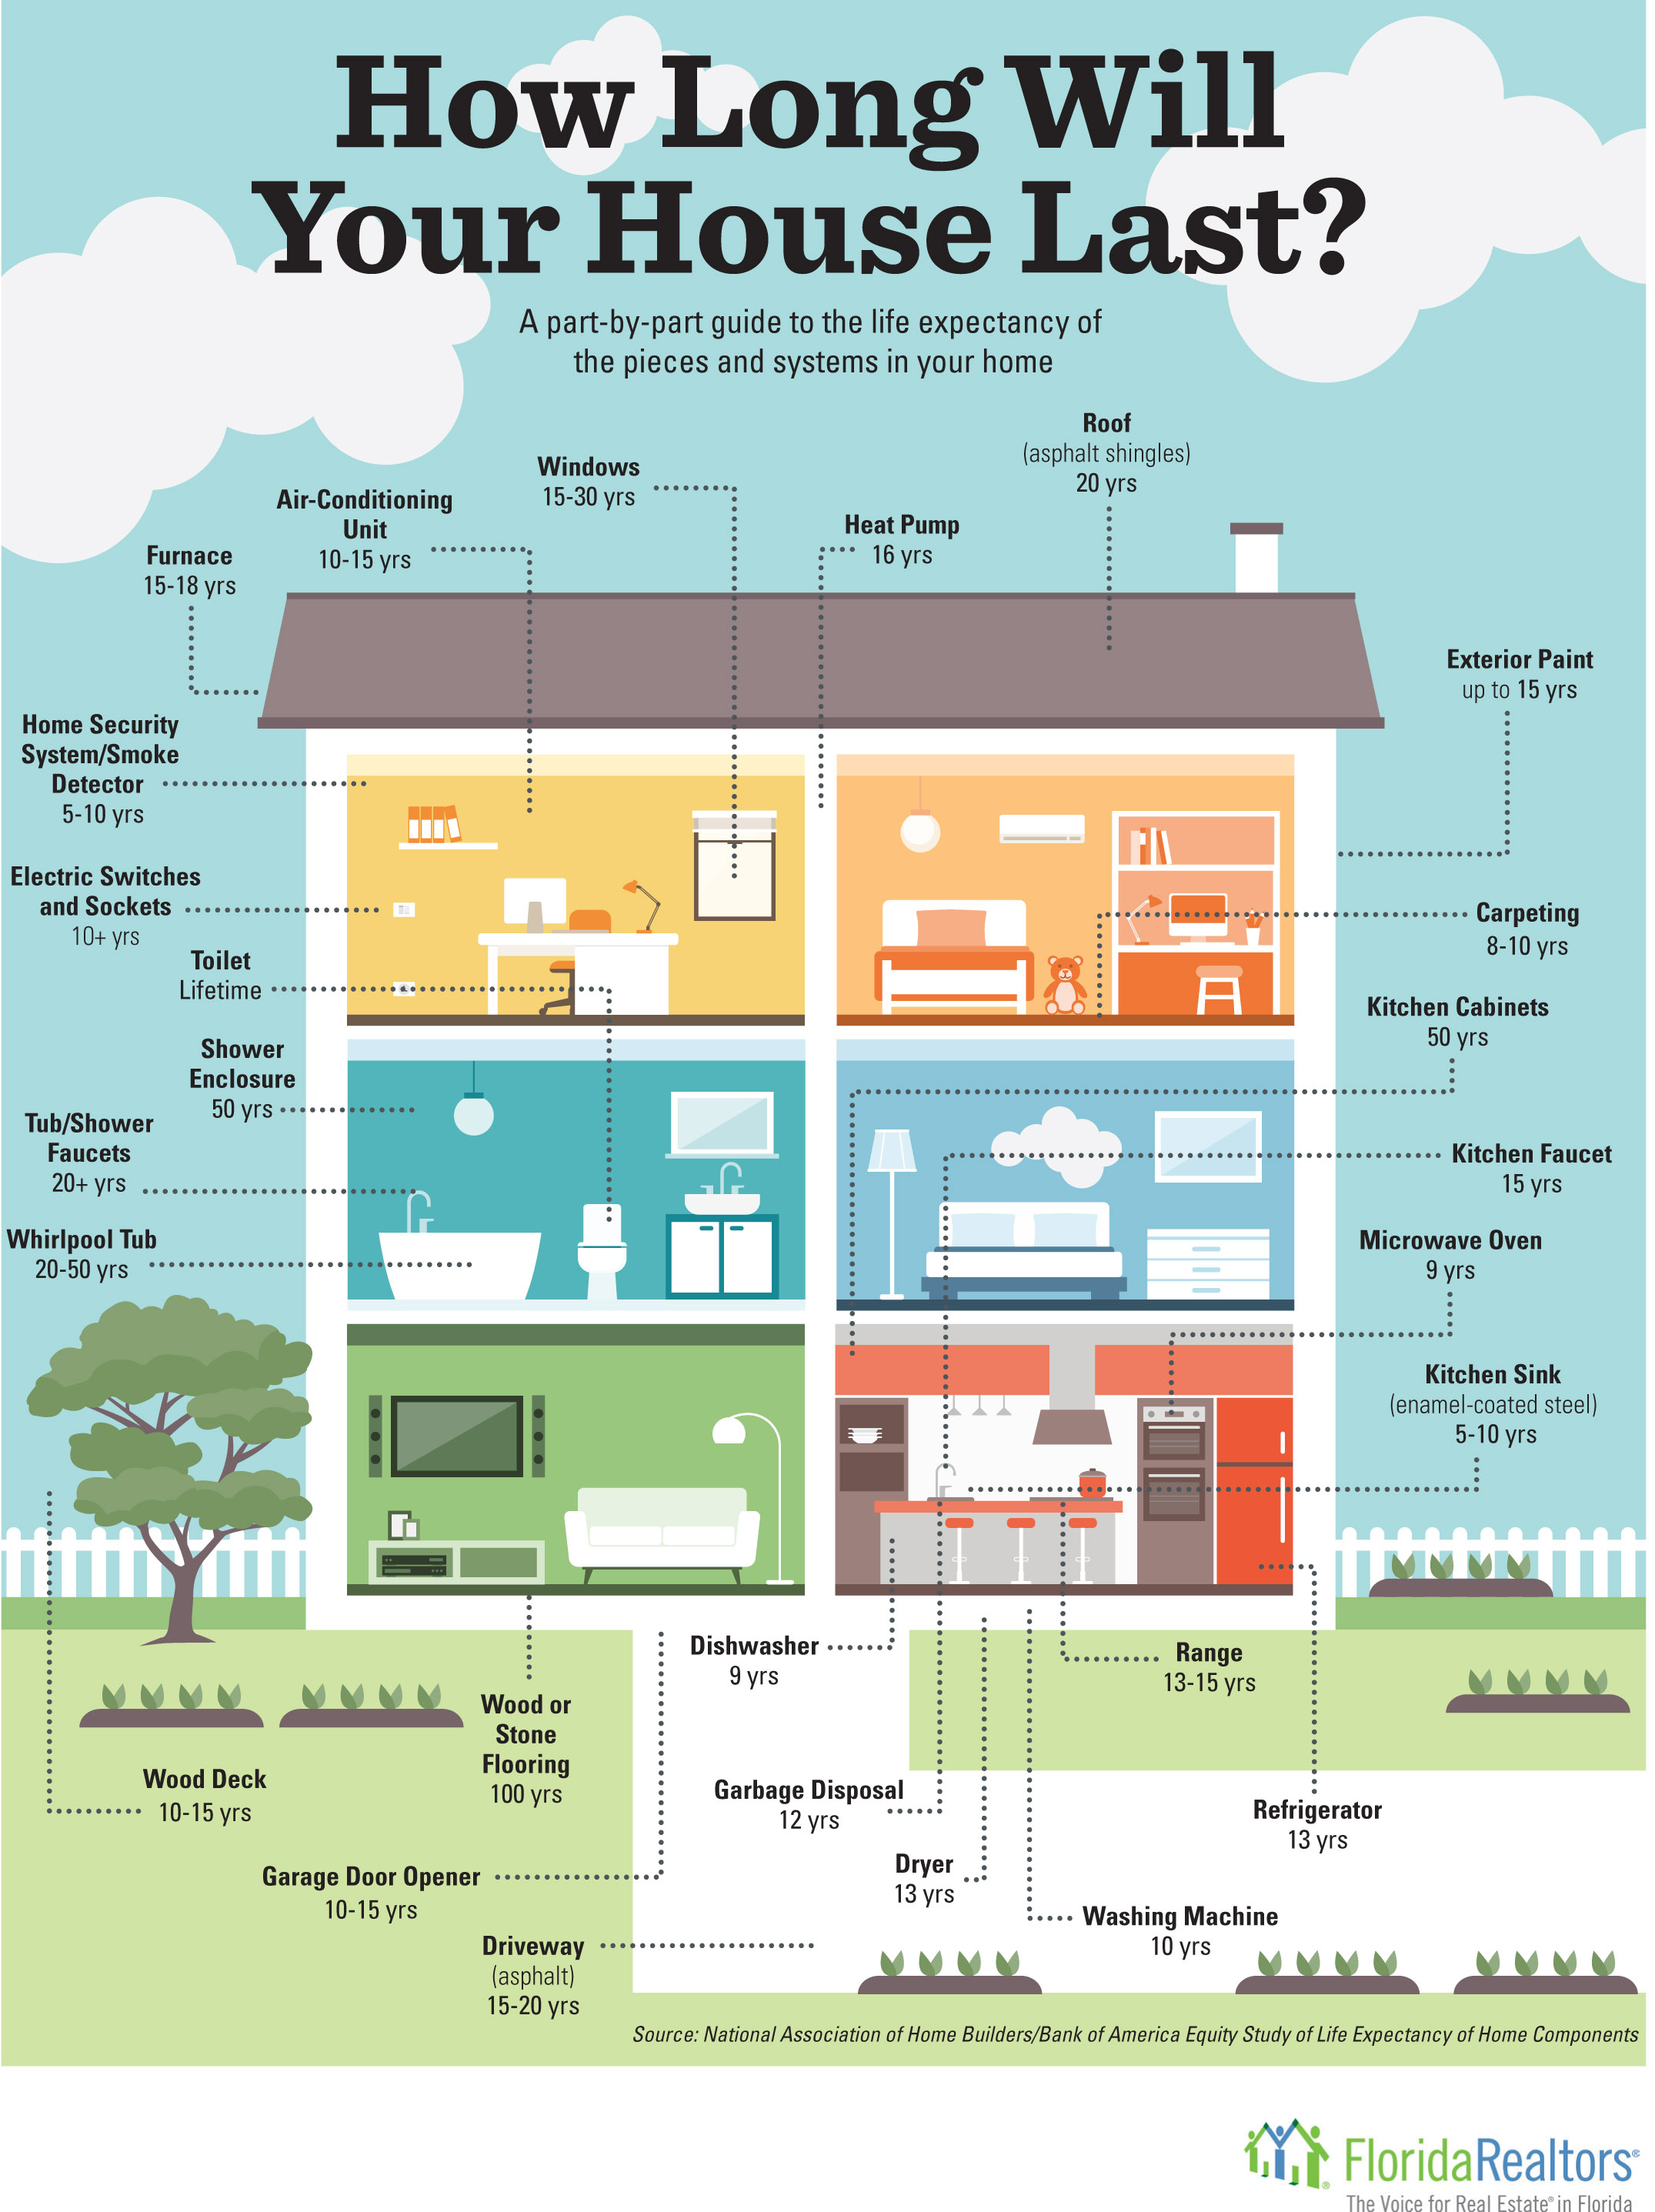 Average Lifespan of home components